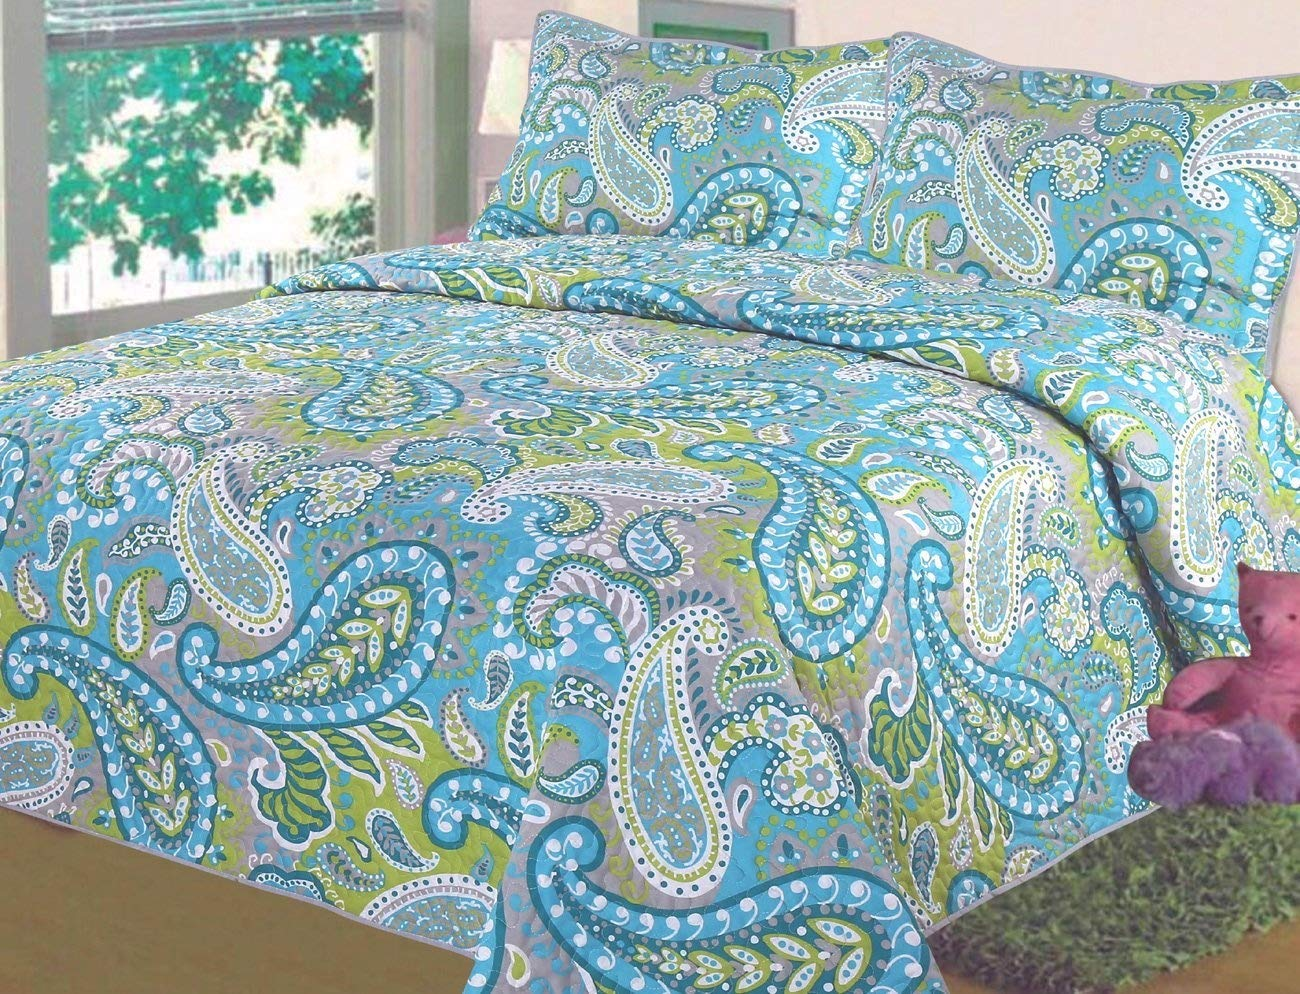 3-Piece Fine Printed Quilt Set (California) King Size Bedspread Coverlet Bed Cover (Turquoise Blue Green Paisley) COMIN18JU058163